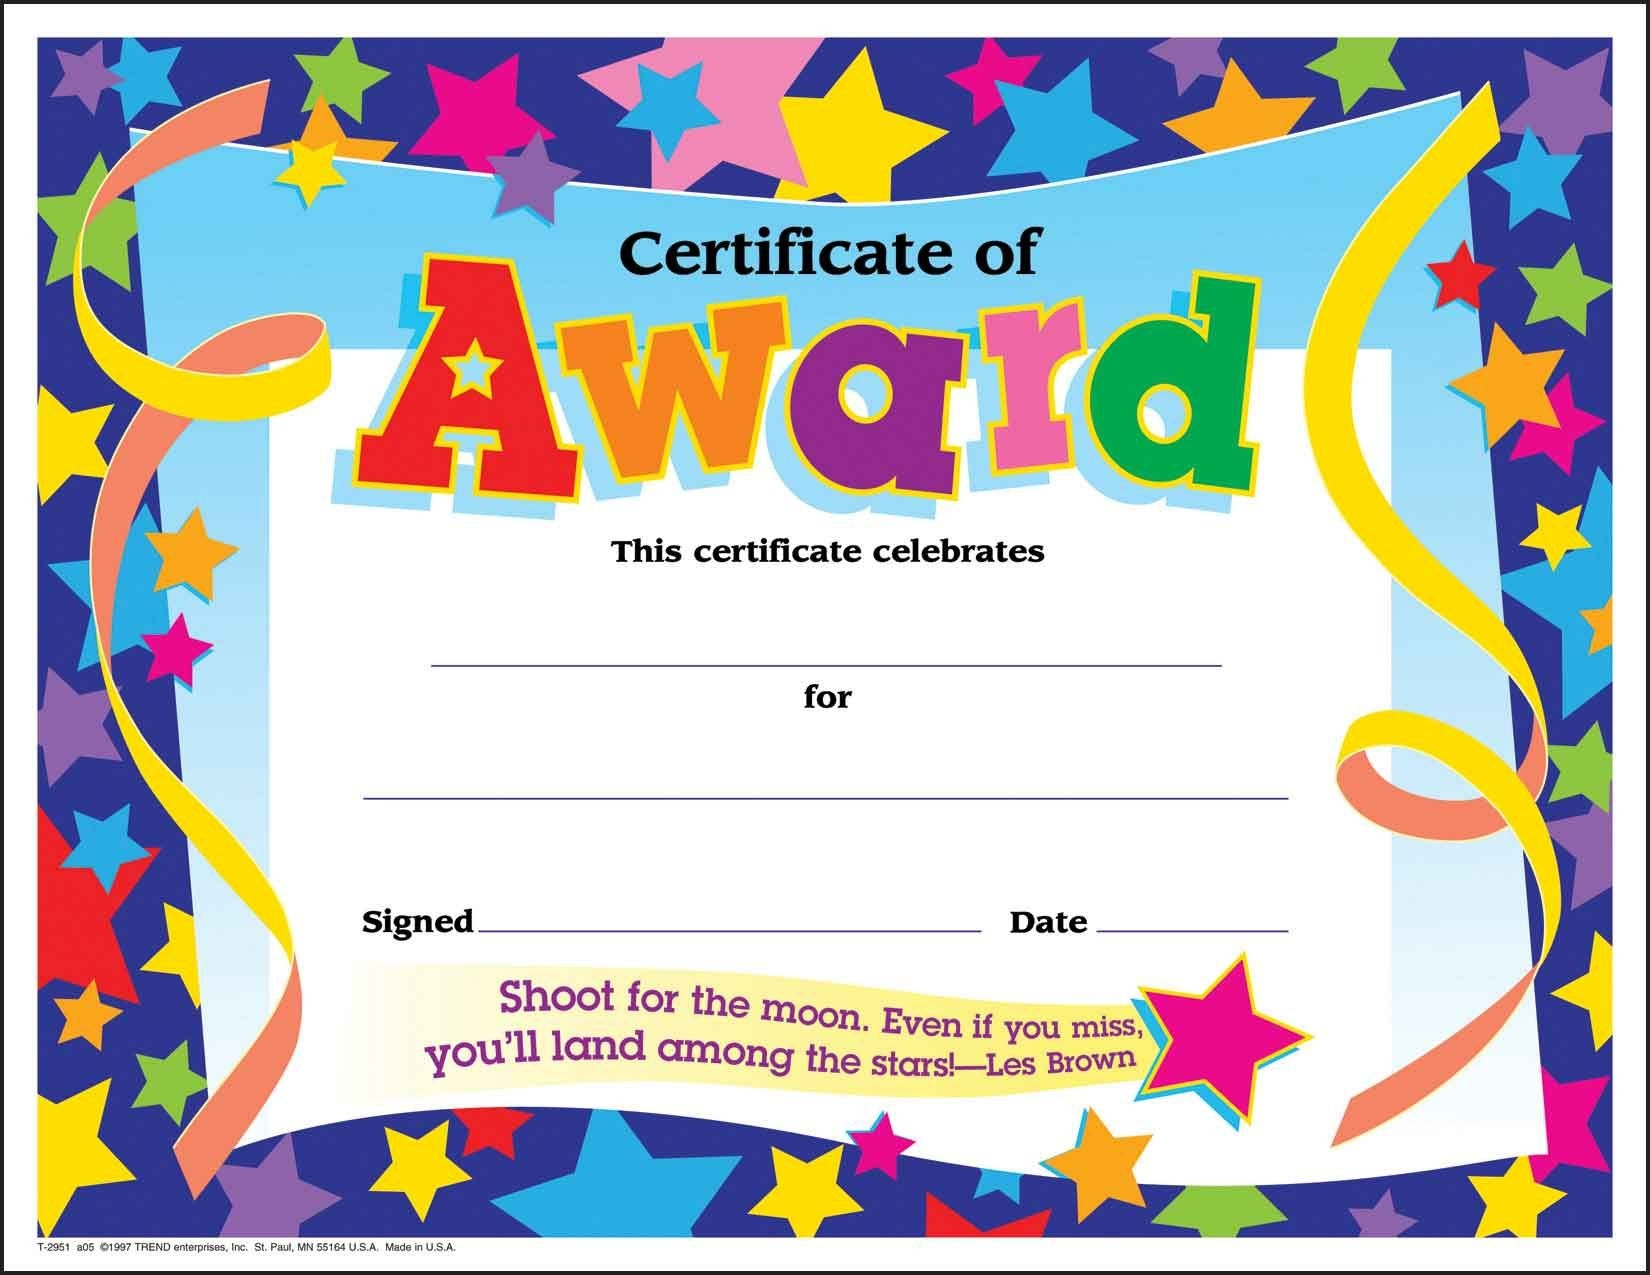 Certificate Template For Kids Free Certificate Templates - Free Printable Honor Roll Certificates Kids